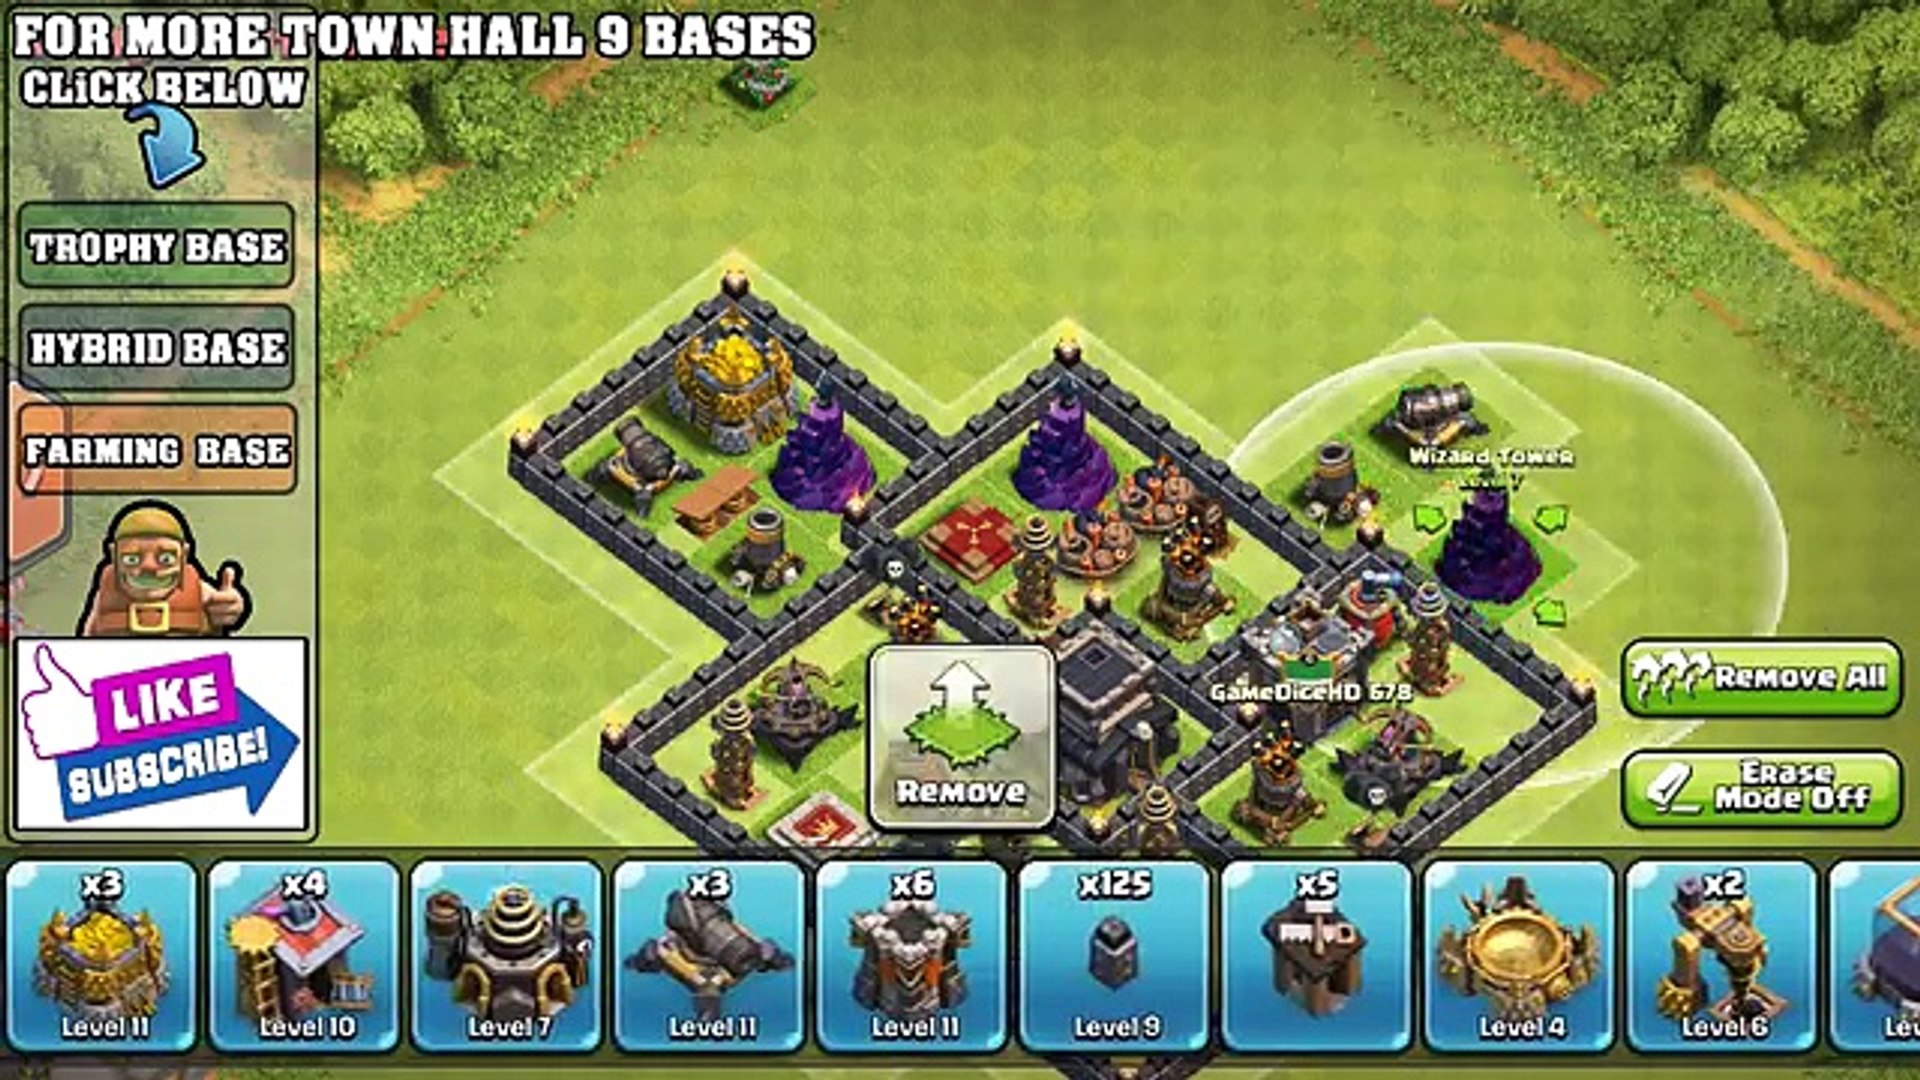 Clash Of Clans Town Hall 9 Th9 Best War Trophy Base 2 Air Sweepers New Update New Dailymotion Video